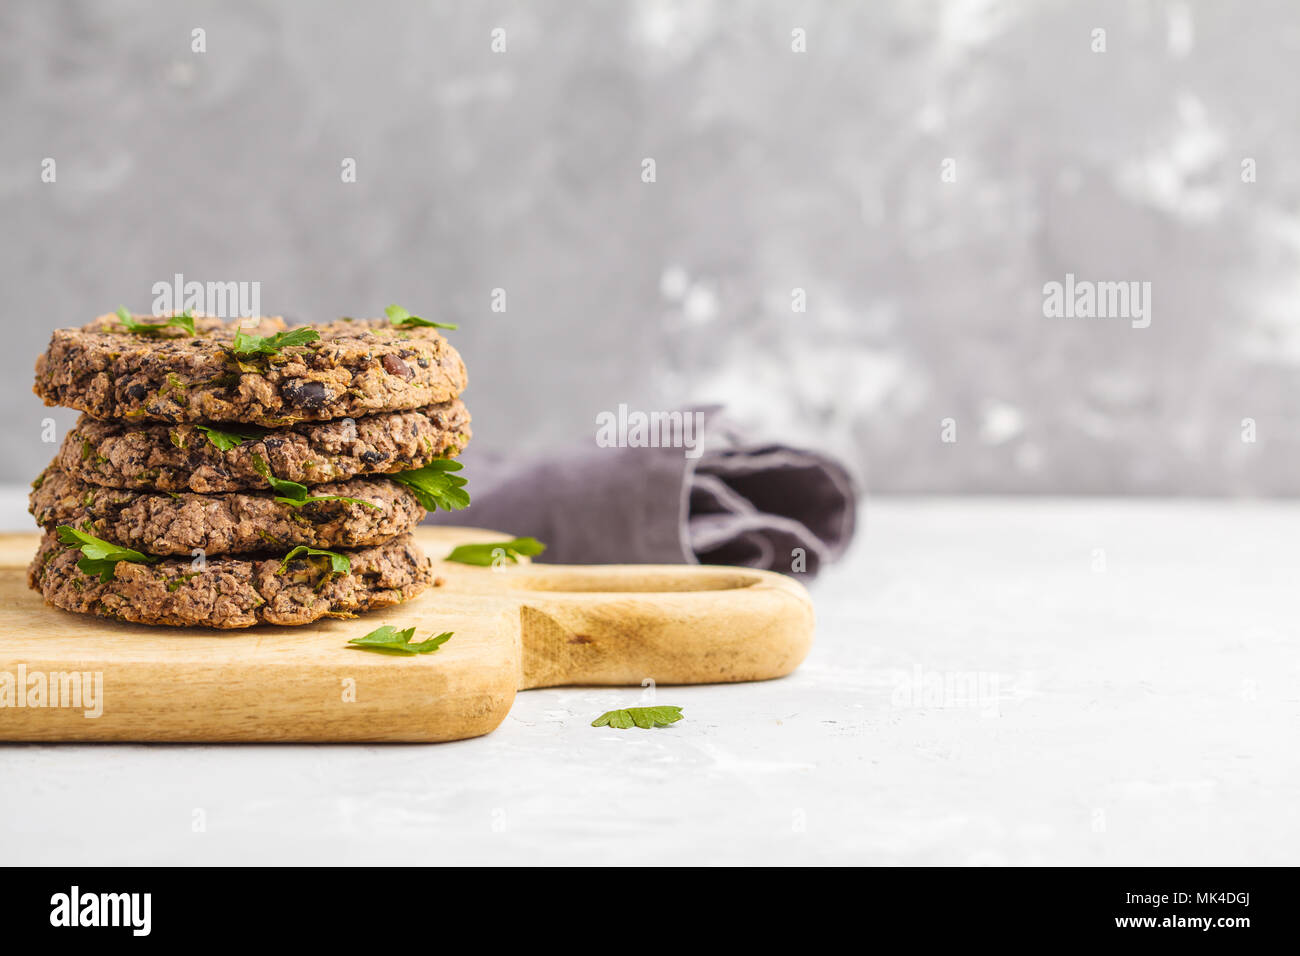 Vegan beans burgers (cutlets) with parsley on a wooden board.  Healthy vegan food concept. - Stock Image